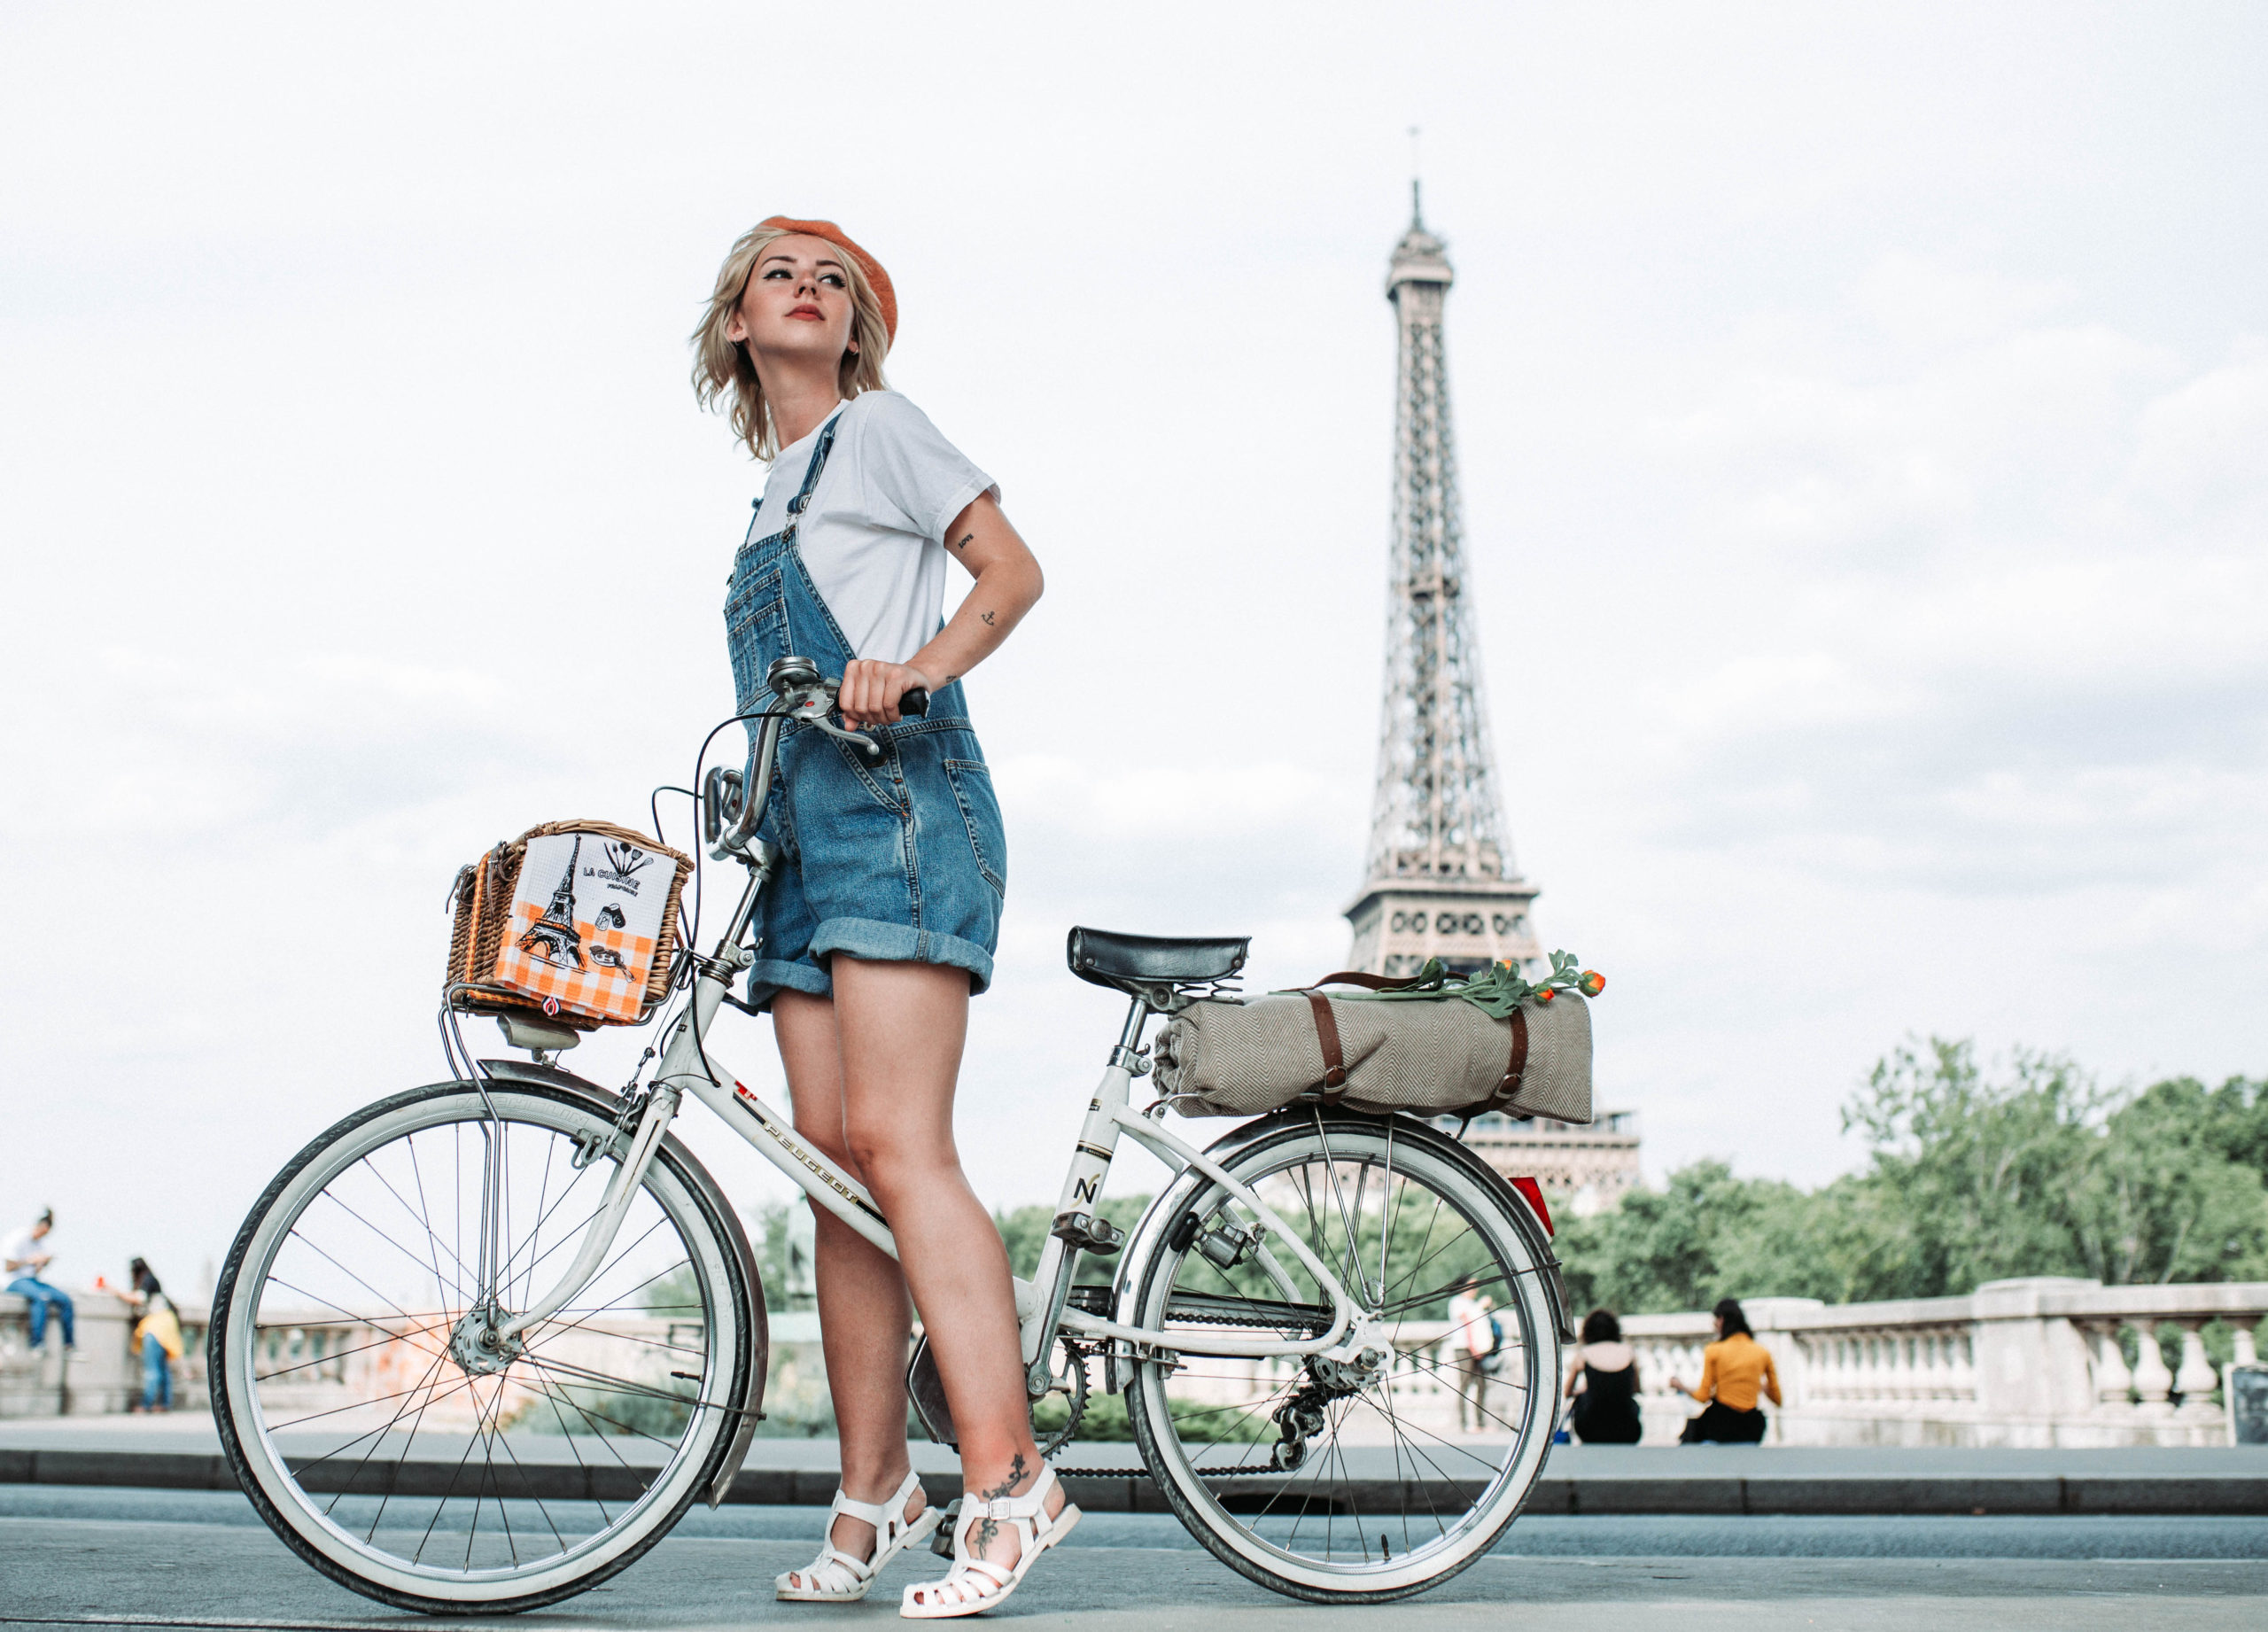 A woman standing still on a bicycle in front of the Eiffel Tower